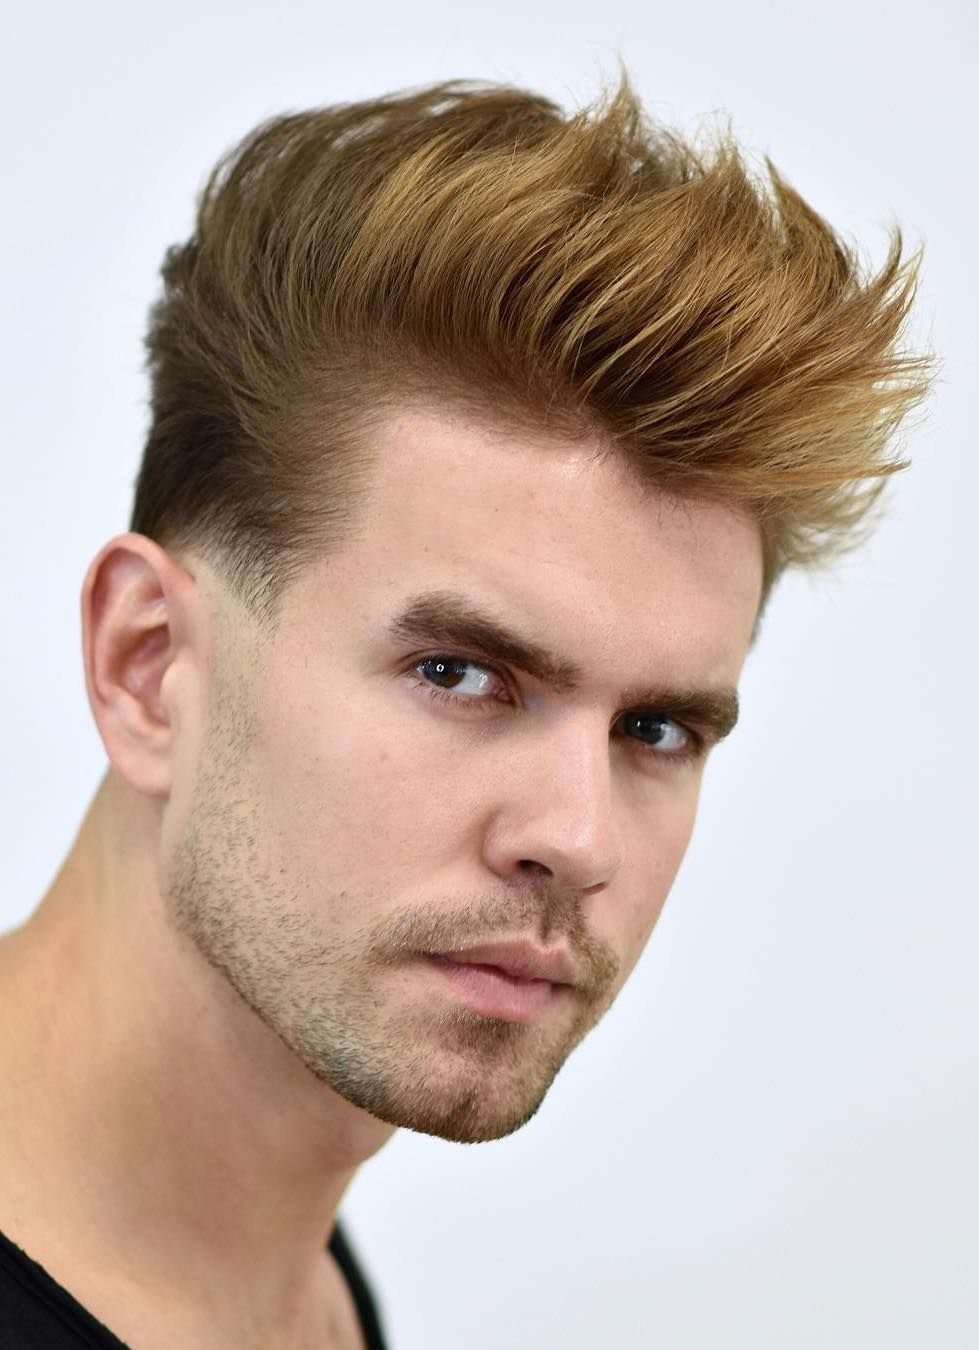 20 Hairstyles For Men With Thin Hair Add More Volume In 2020 Hairstyles For Thin Hair Thin Hair Men Cool Hairstyles